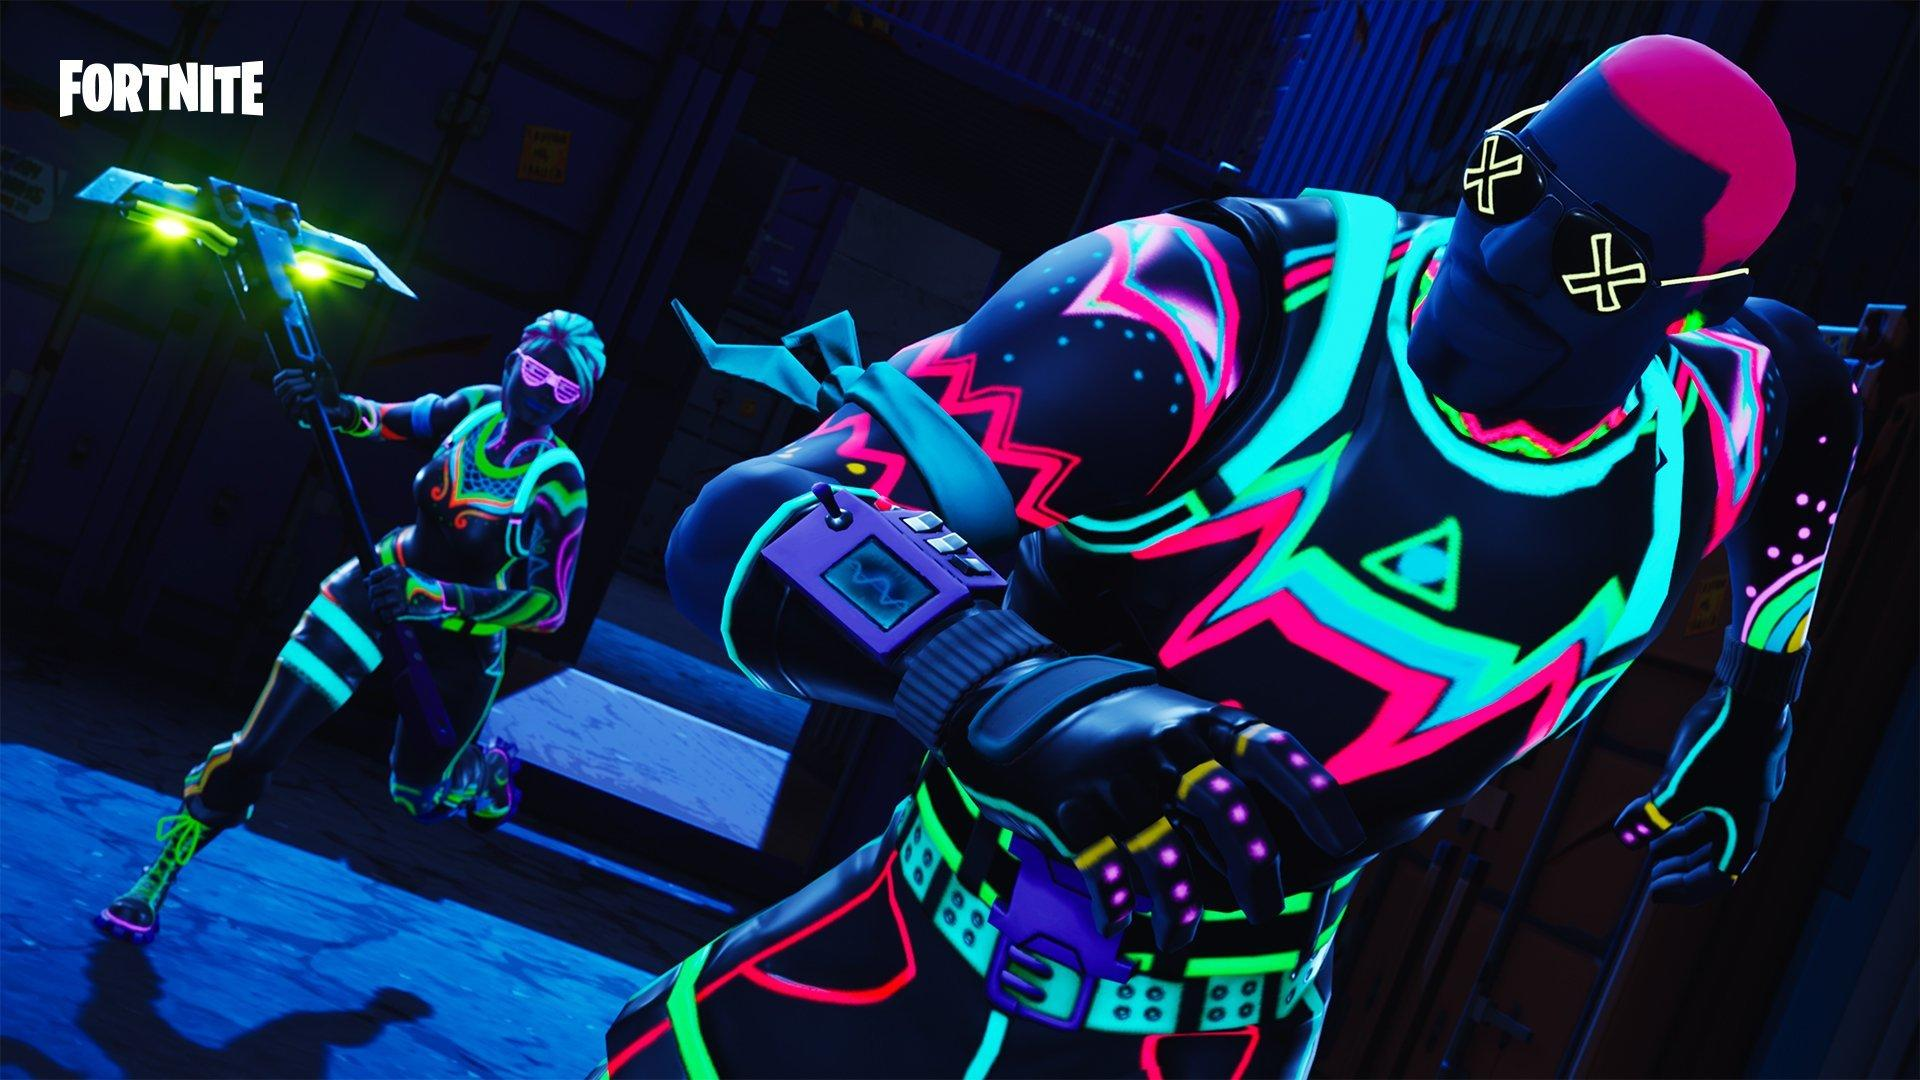 Wallpaper Fortnite – Scalsys